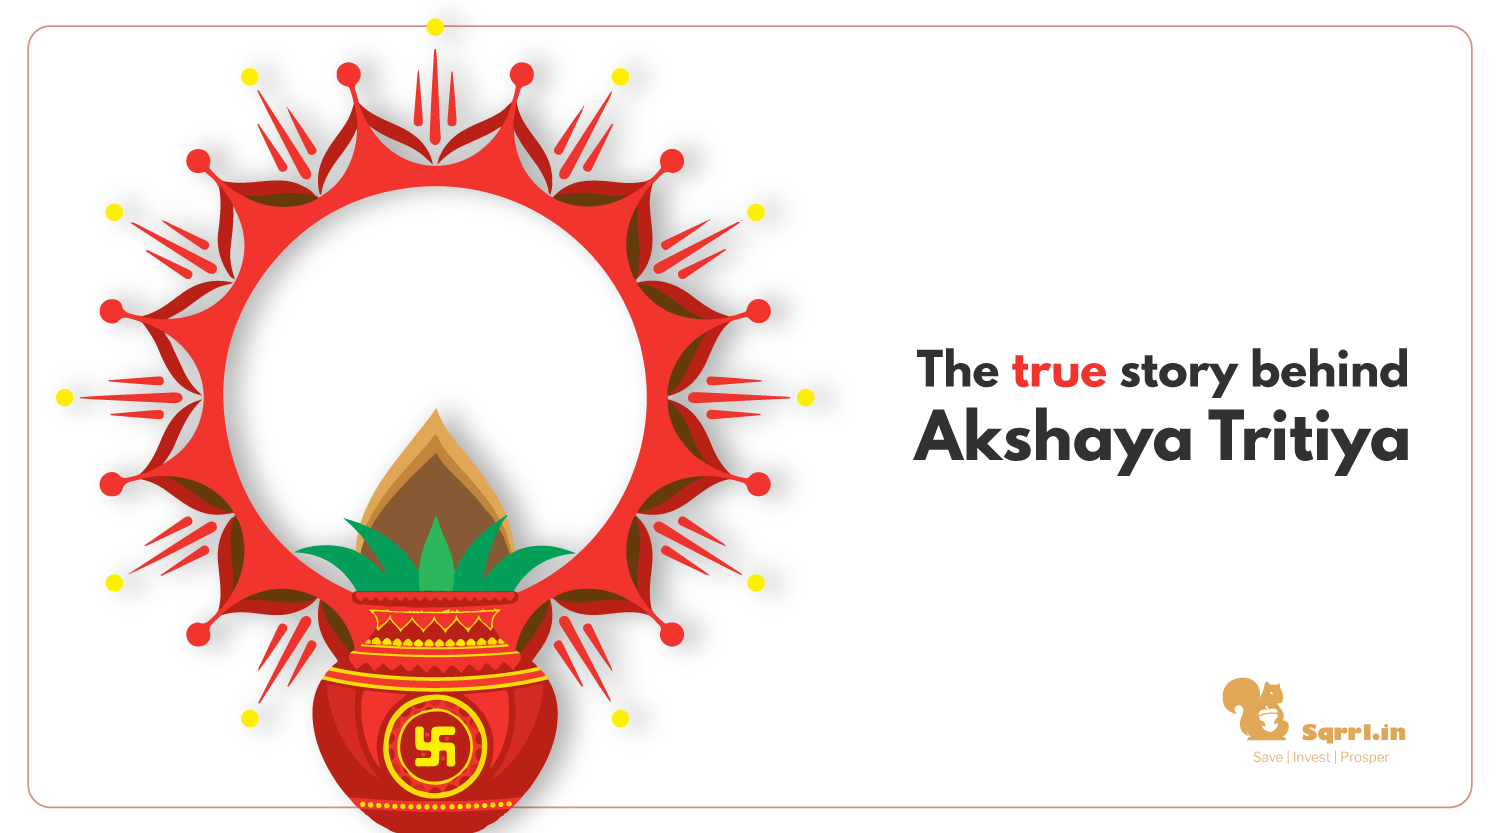 The story of Akshaya Tritiya